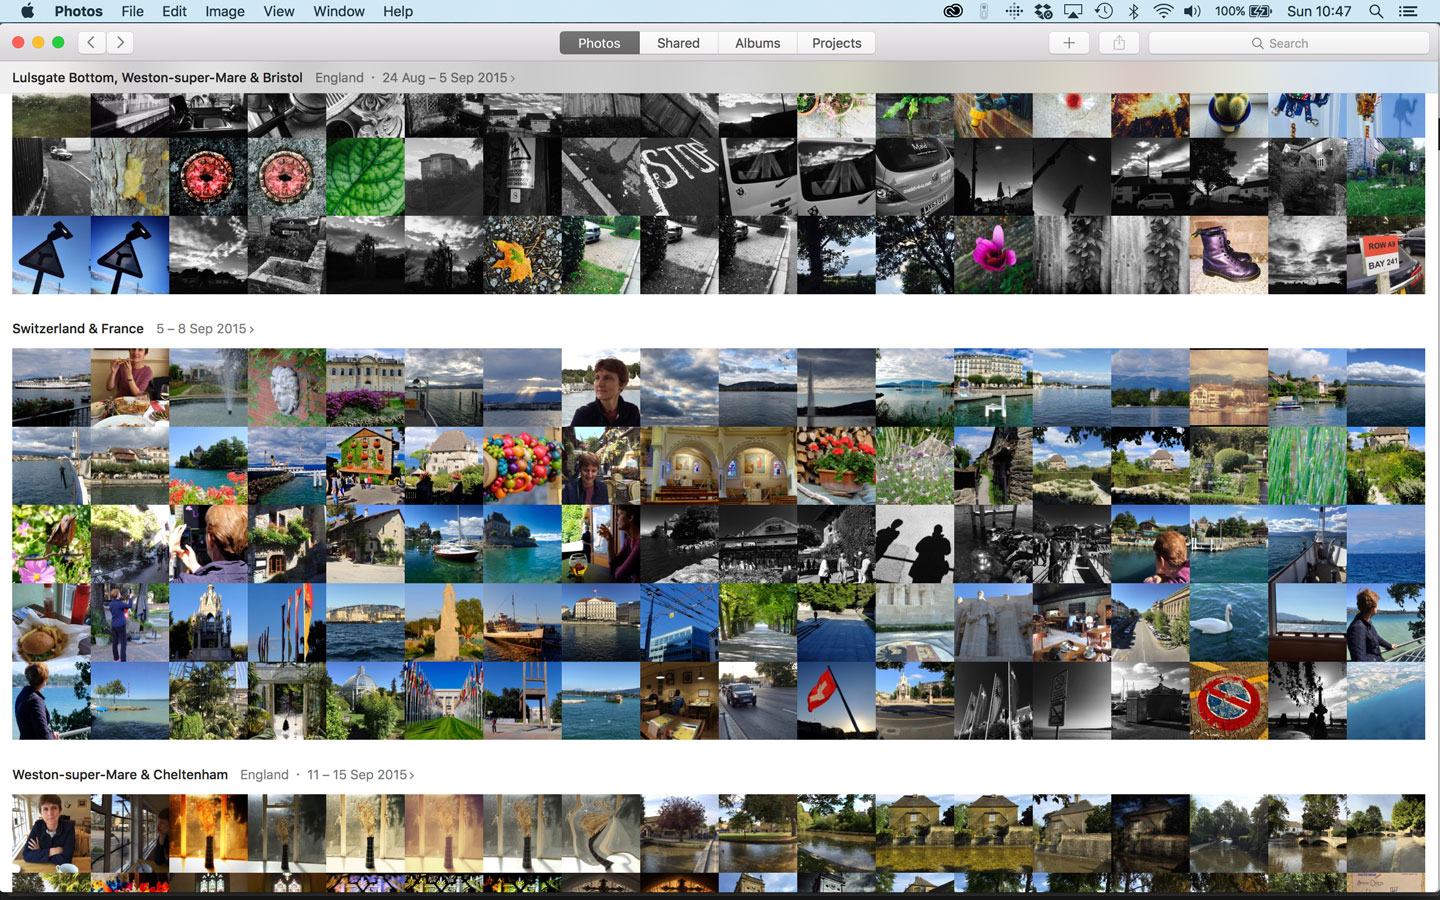 How to make sense of the Apple Photos interface